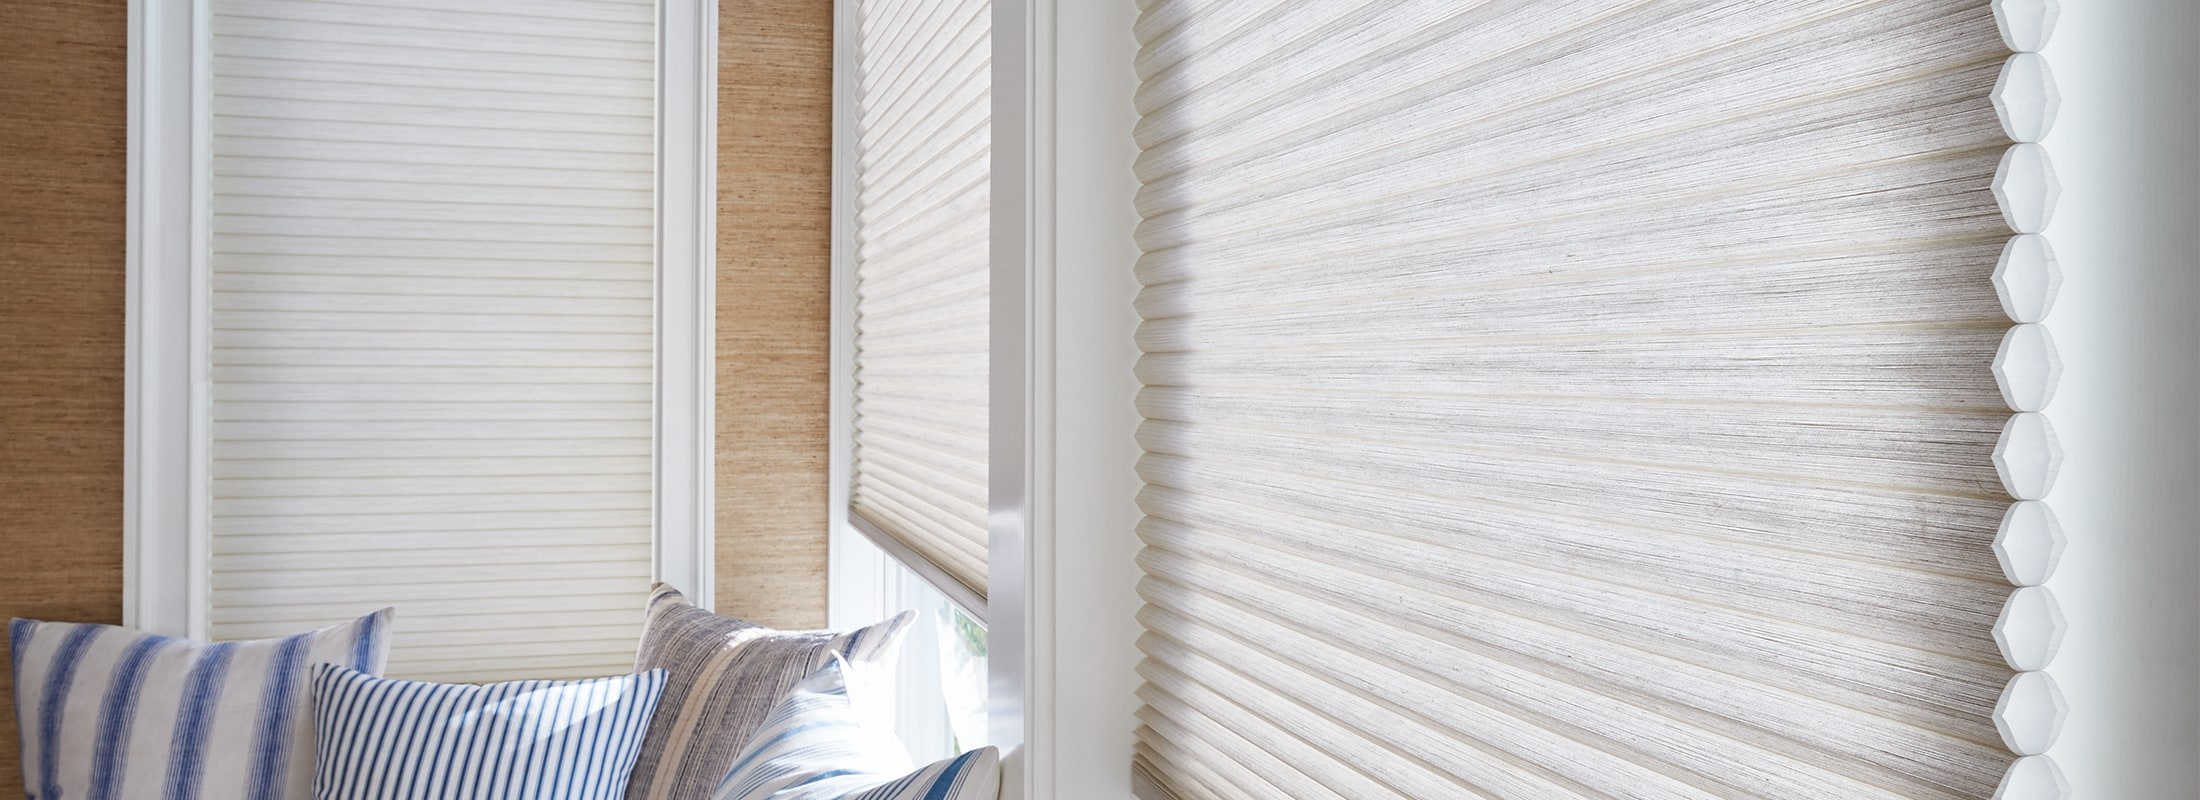 Cellular Blinds in White